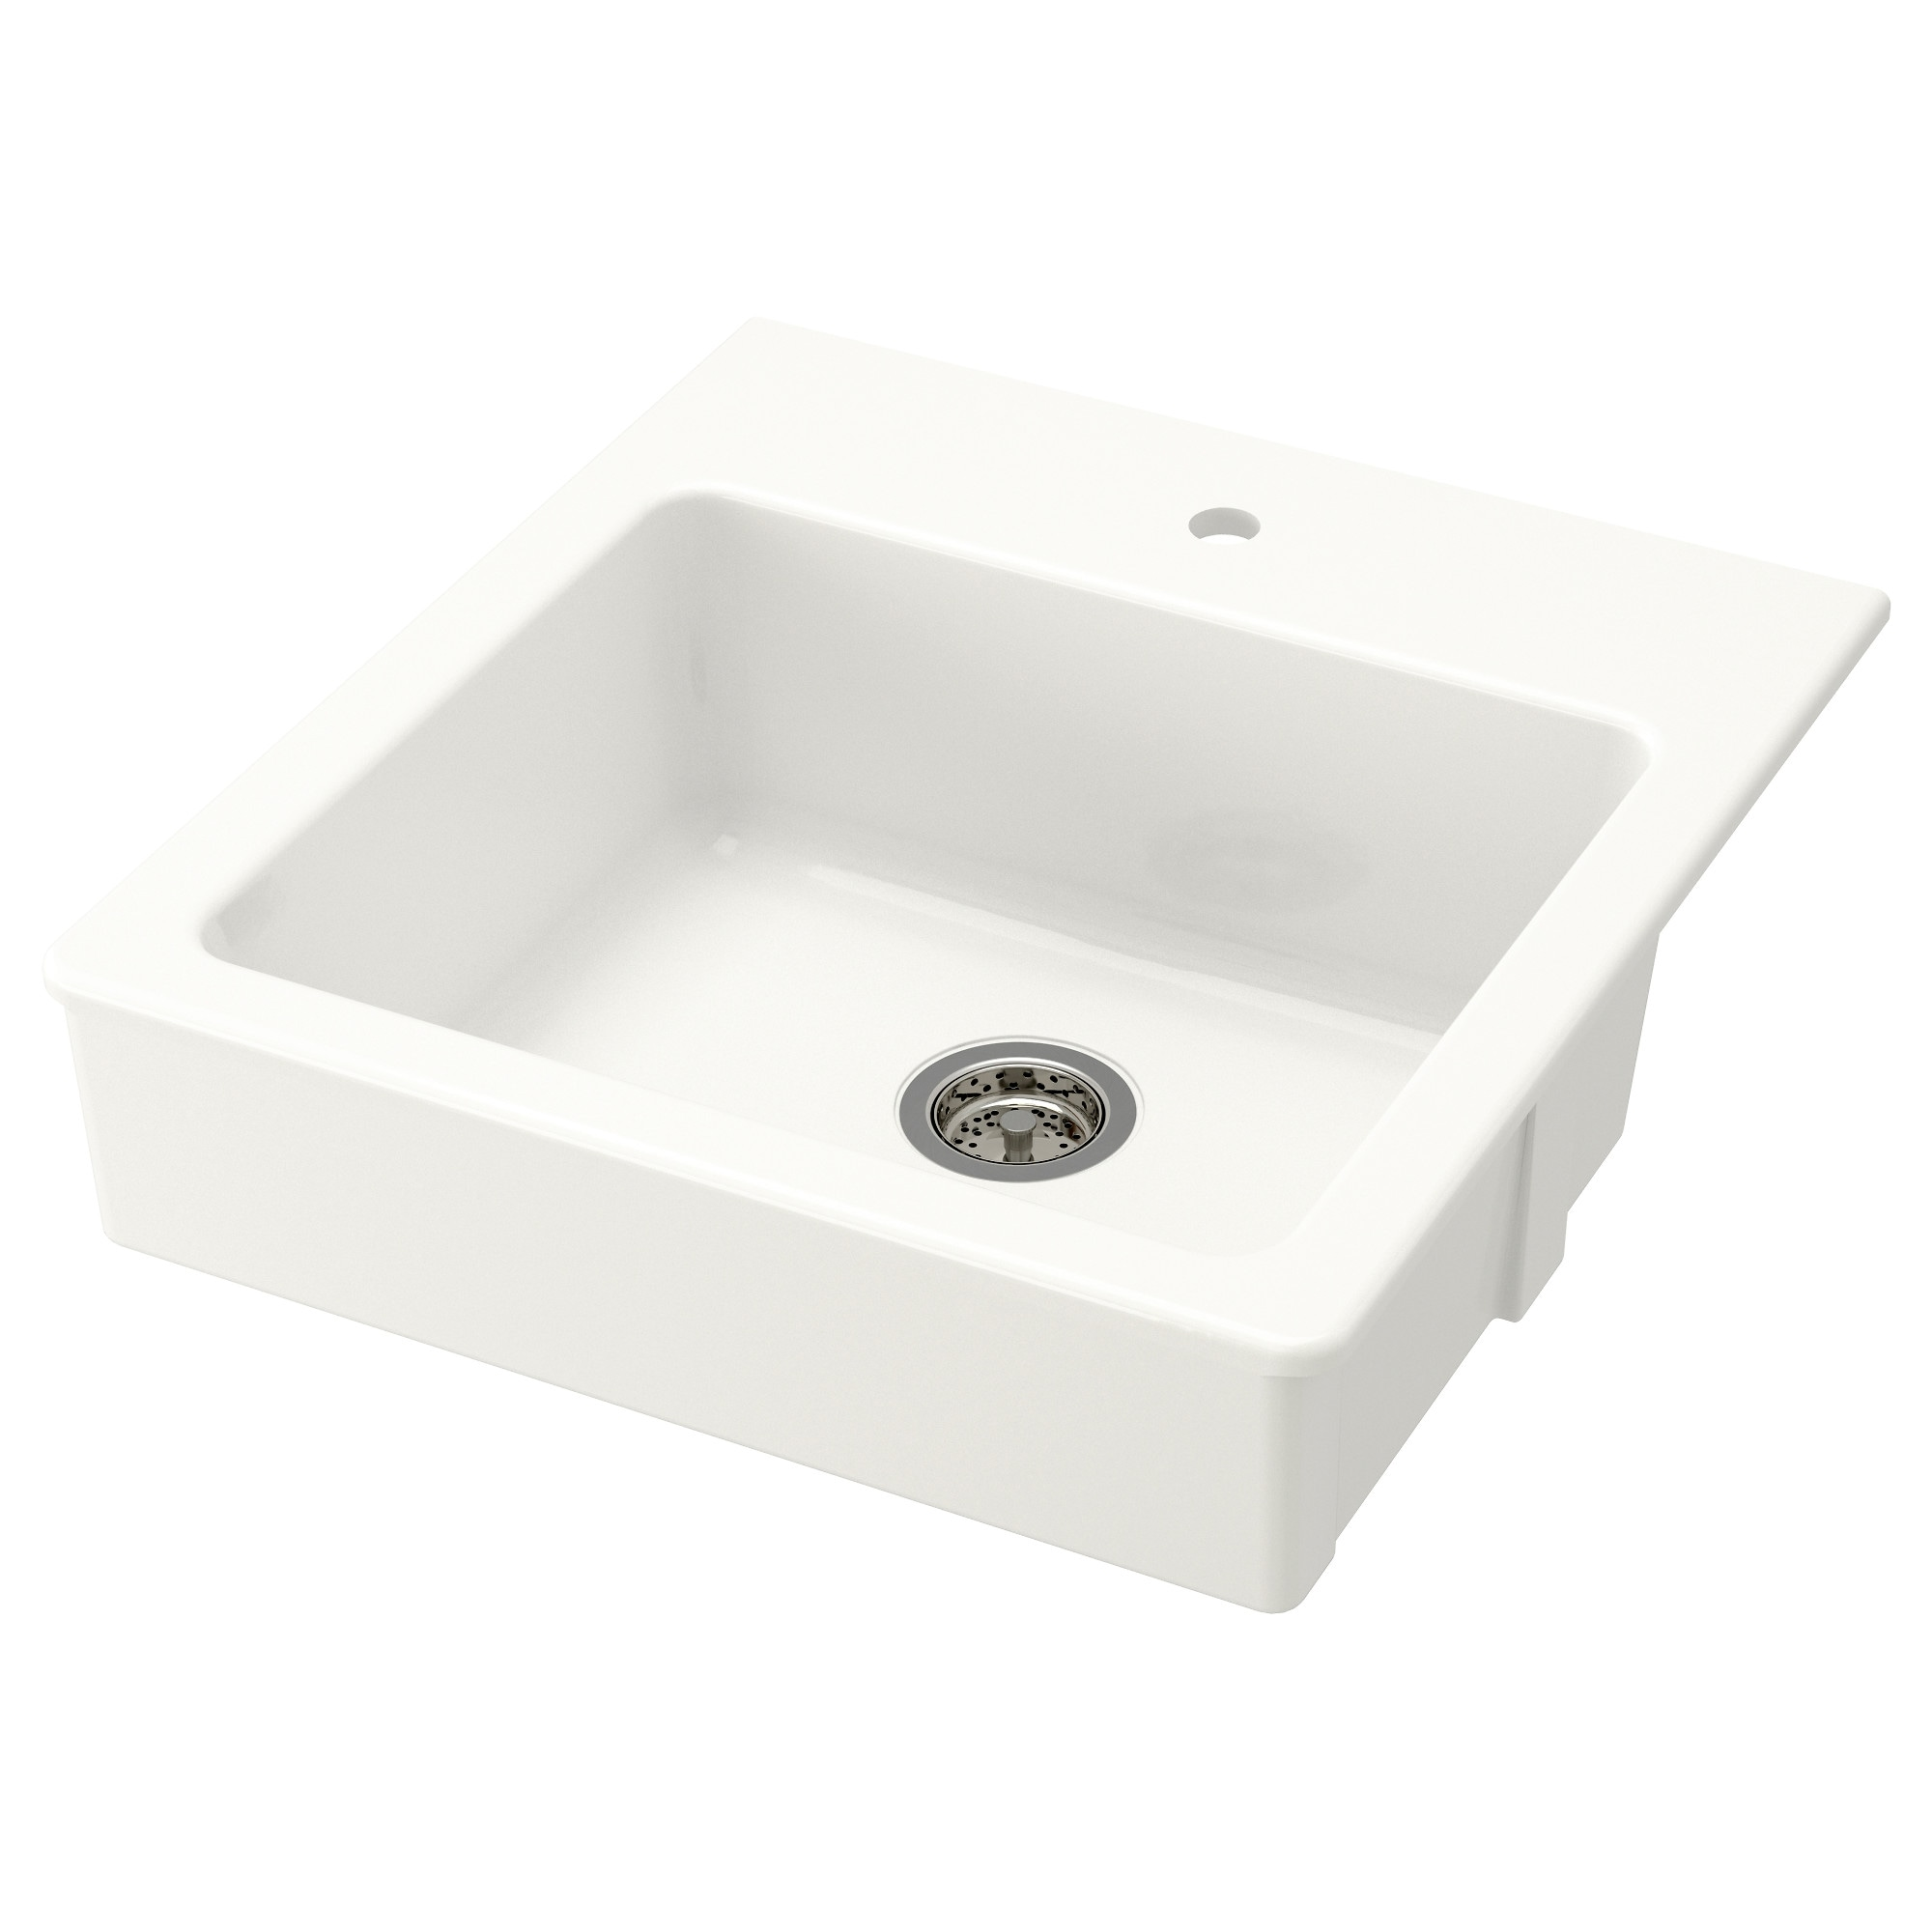 DOMSJ– Single bowl apron front sink IKEA